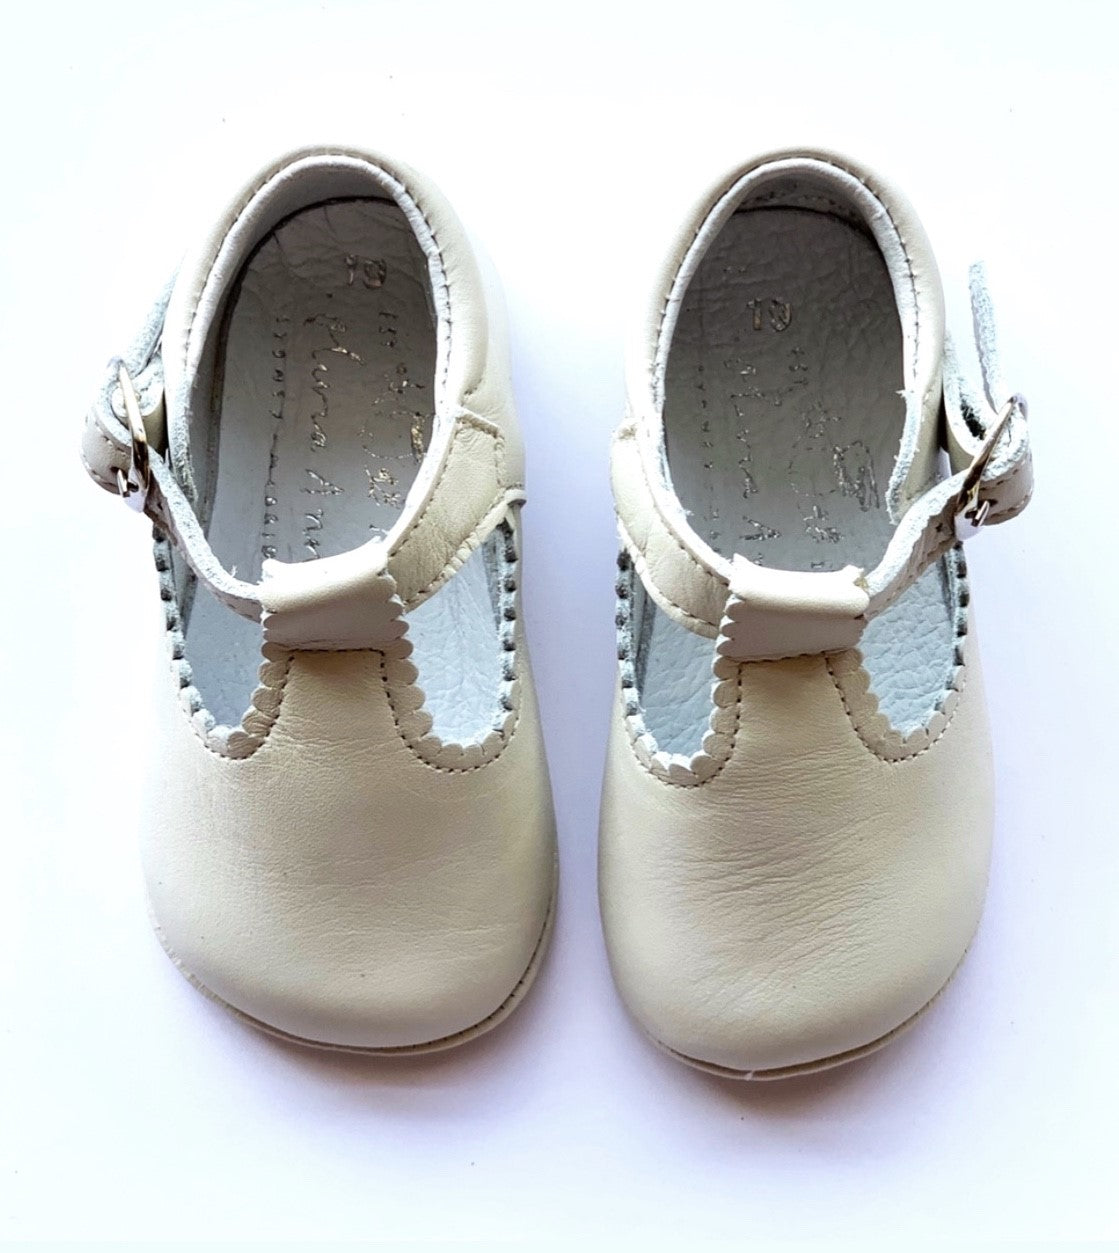 Cream leather T-Bay UNISEX shoe for baby and toddlers, made in a traditional style and pretty scalloped edge. They have a T bar strap with adjustable buckle strap. Ideal for any day occasion, parties, baptism etc.